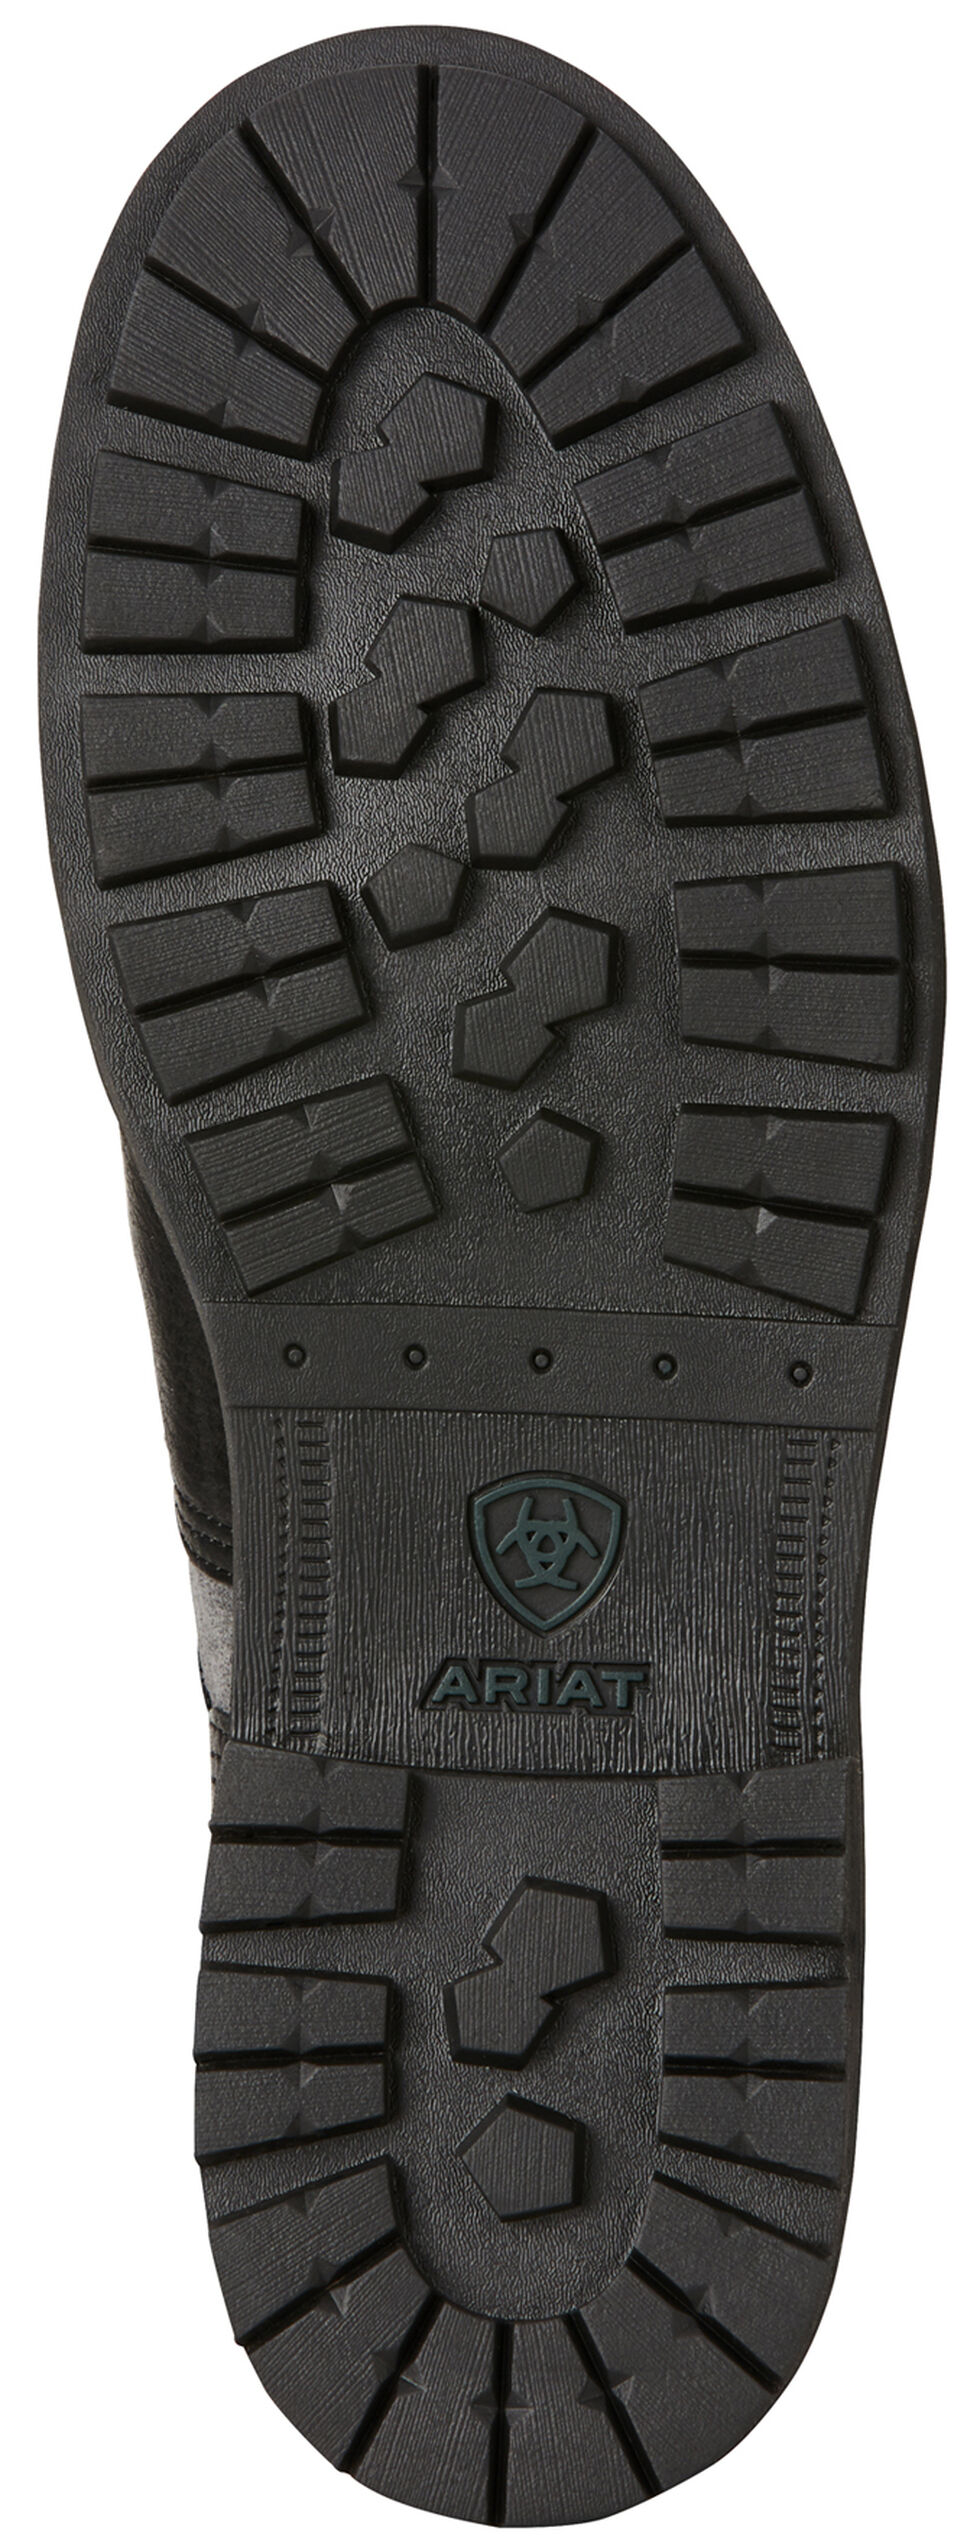 Ariat Men's Graphite Easy Street Lace-Up Boots - Round Toe , Black, hi-res